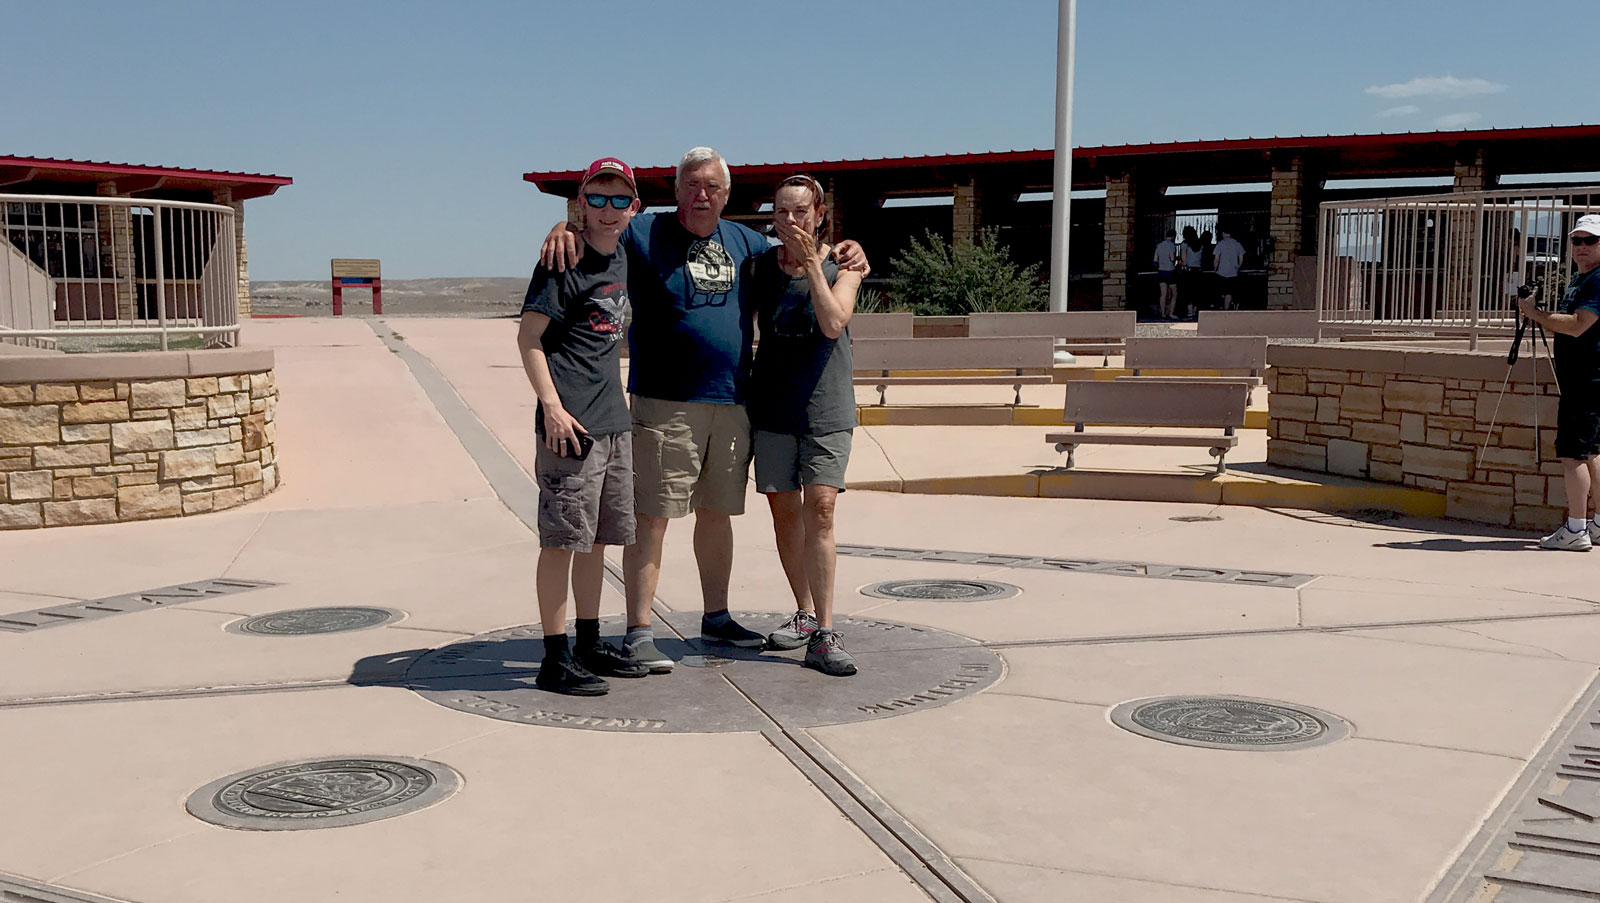 Standing in four stated, Colorado, New Mexico, Arizona and Utah